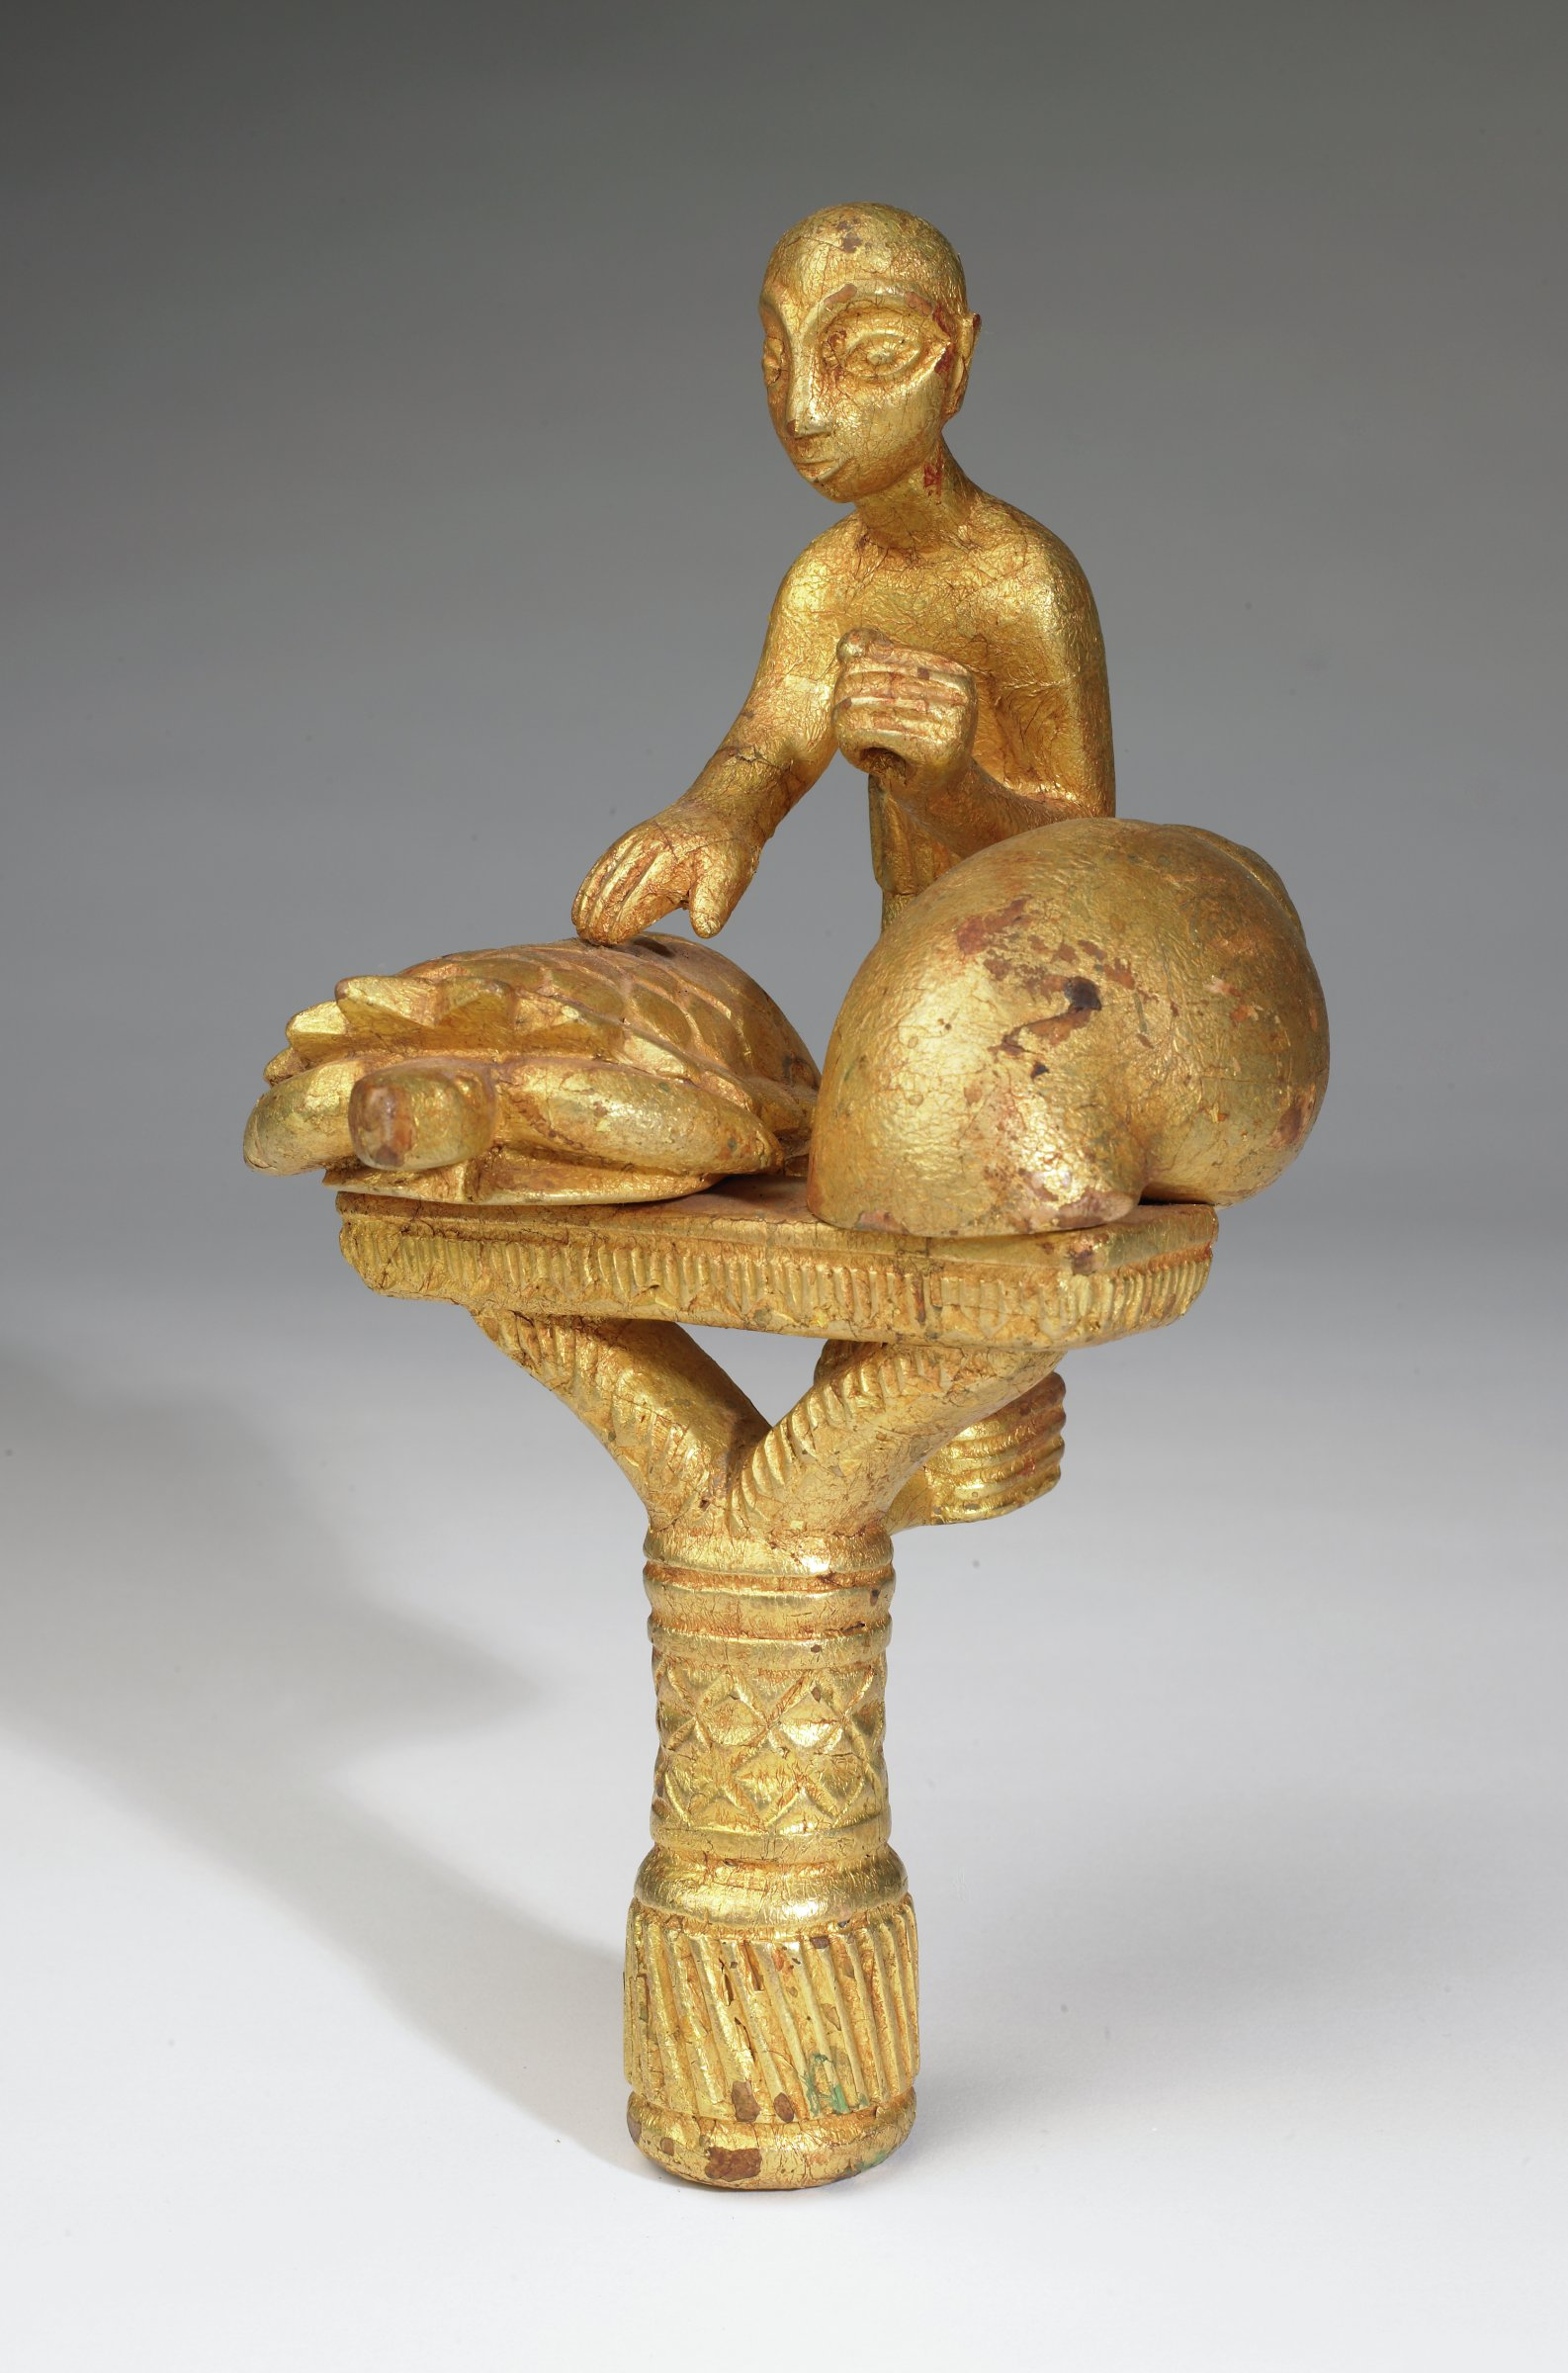 Linguist Staff Finial (okyeame poma), Akan group, Asante people, Ghana, African, wood and gold leaf